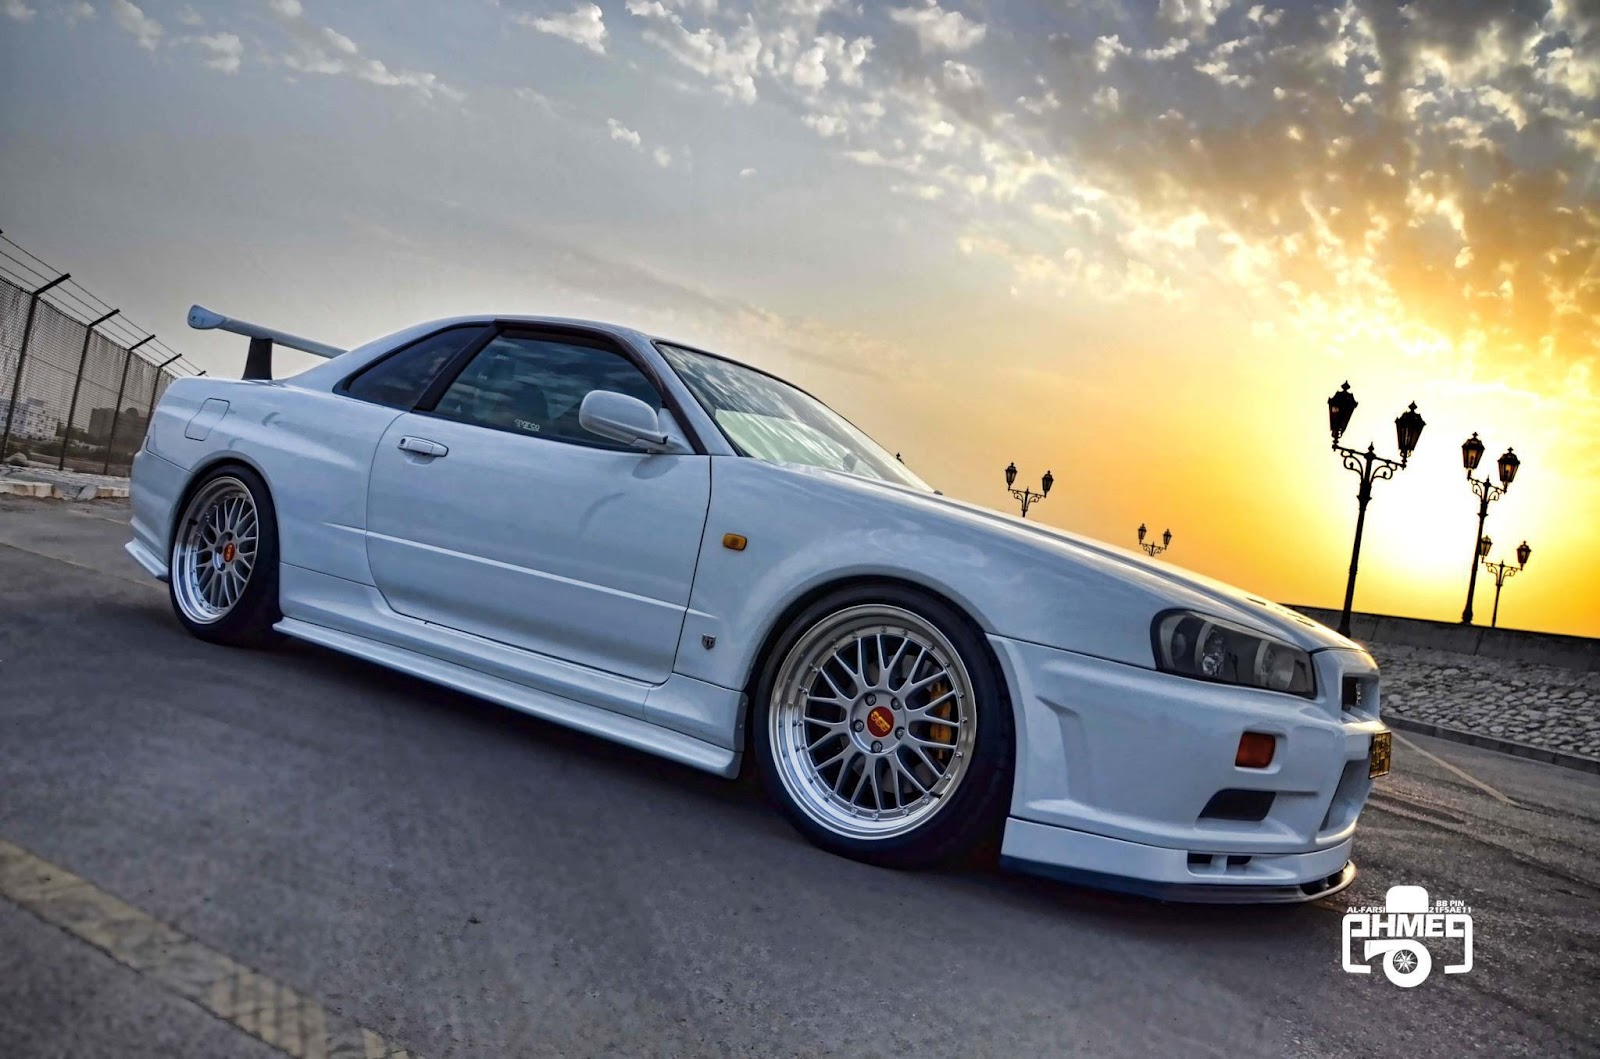 Car pics and vids: Nissan Skyline R34 GT-R Collection 16